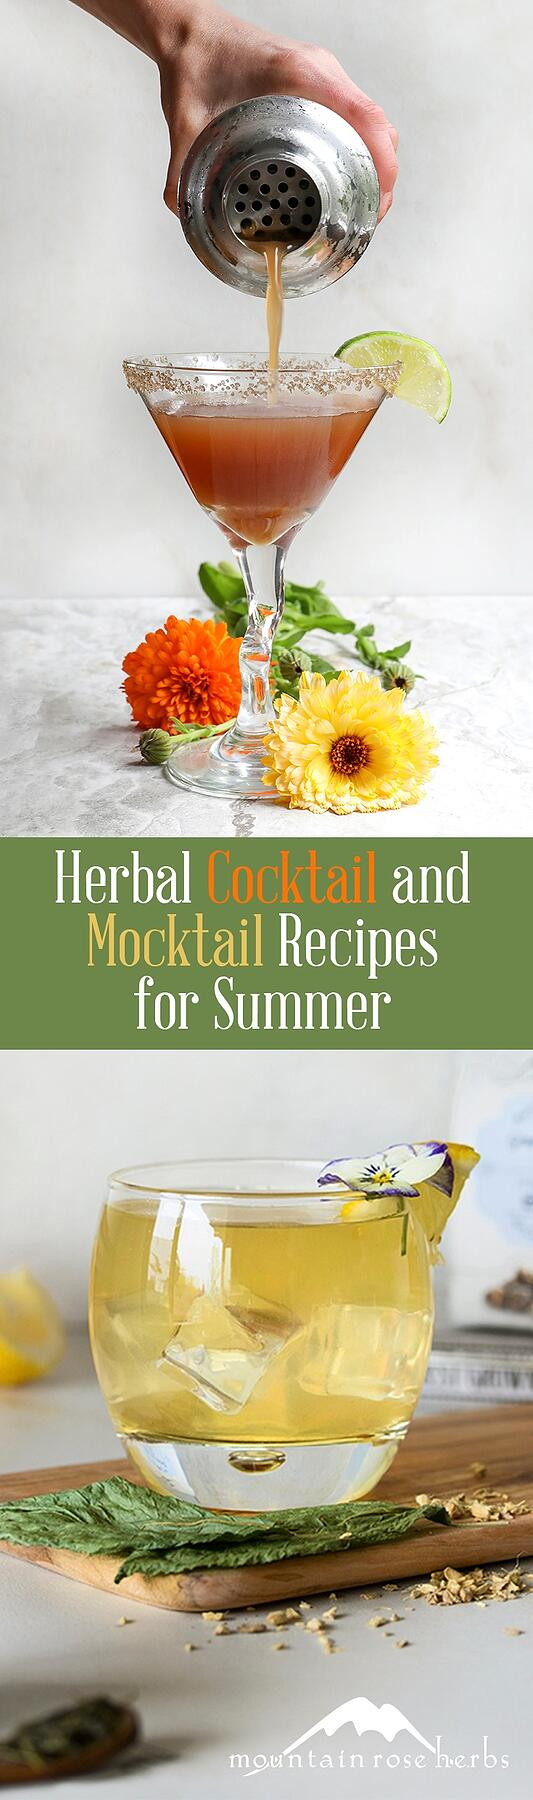 Herbal Cocktail and Mocktail Recipes for Summer